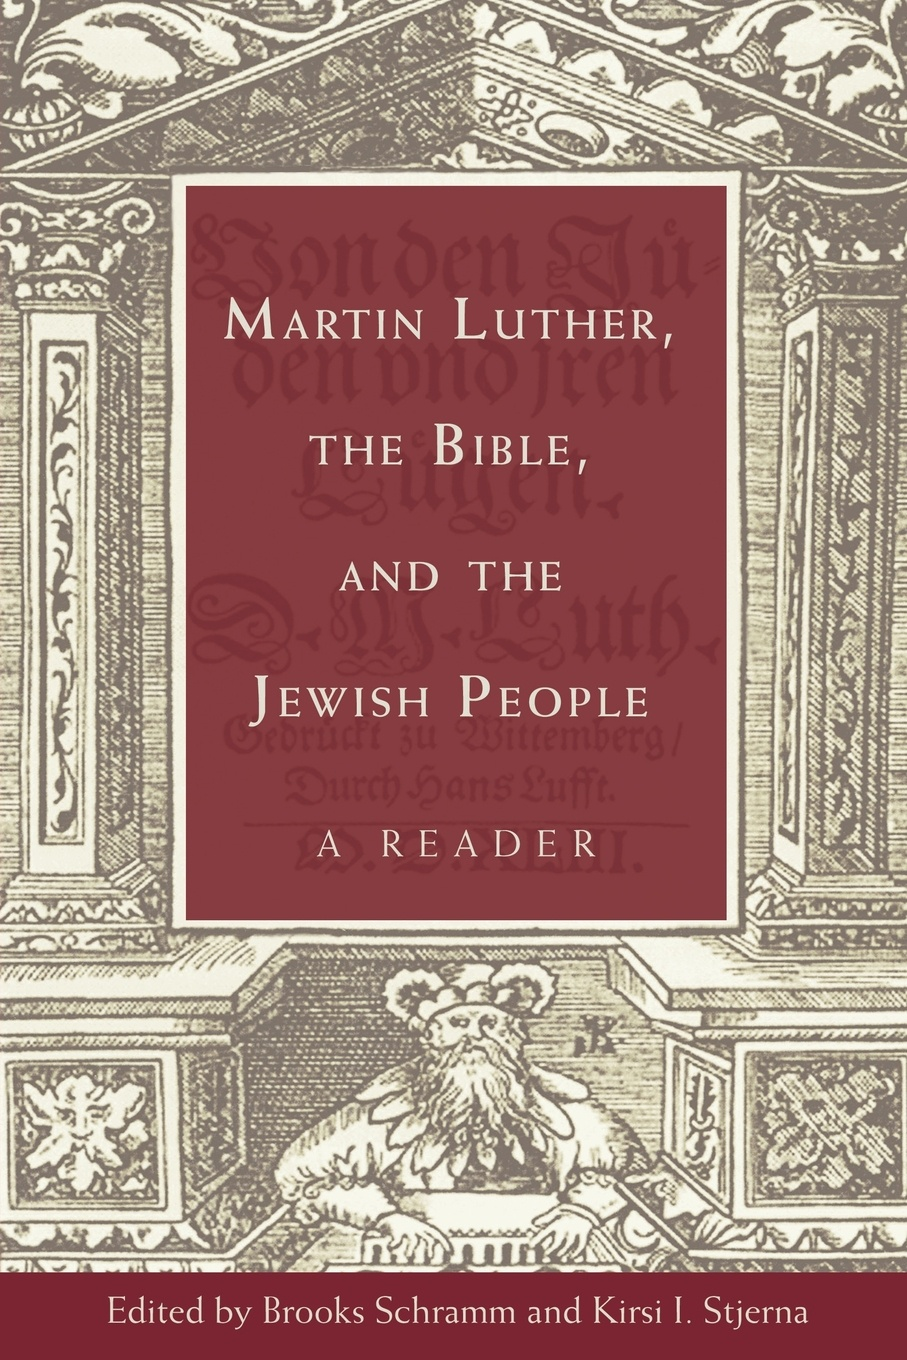 Фото - Martin Luther, the Bible, and the Jewish People. A Reader the maori people reader книга для чтения